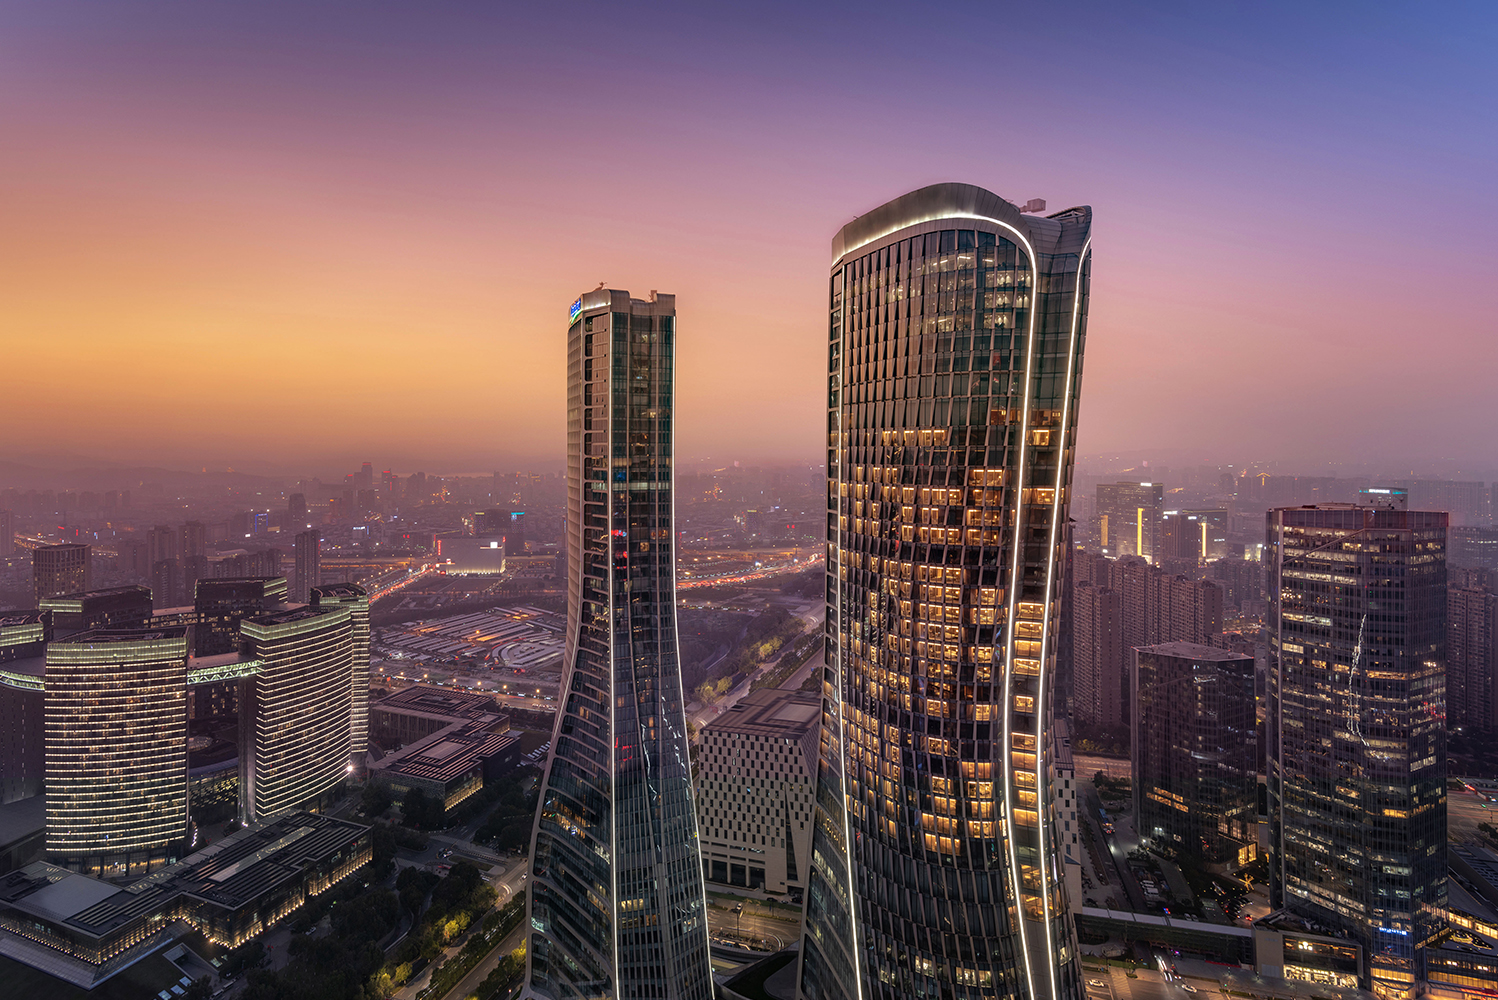 The property also has the tallest restaurant in Hangzhou, the Li'An restaurant, which is located on the 50th floor.